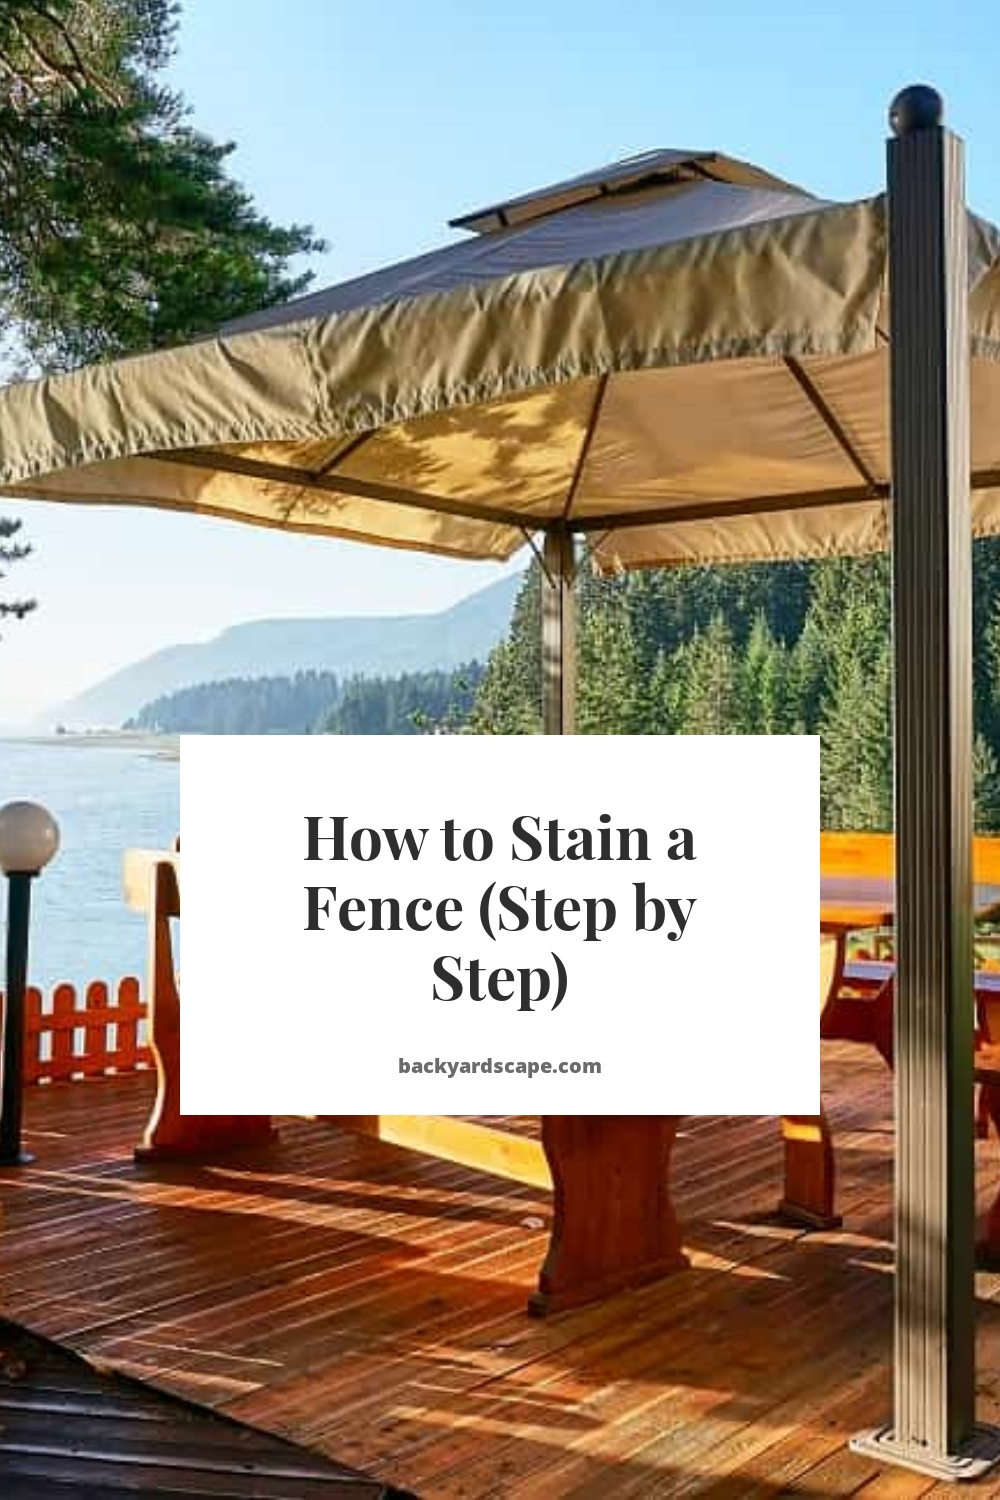 How to Stain a Fence (Step by Step)